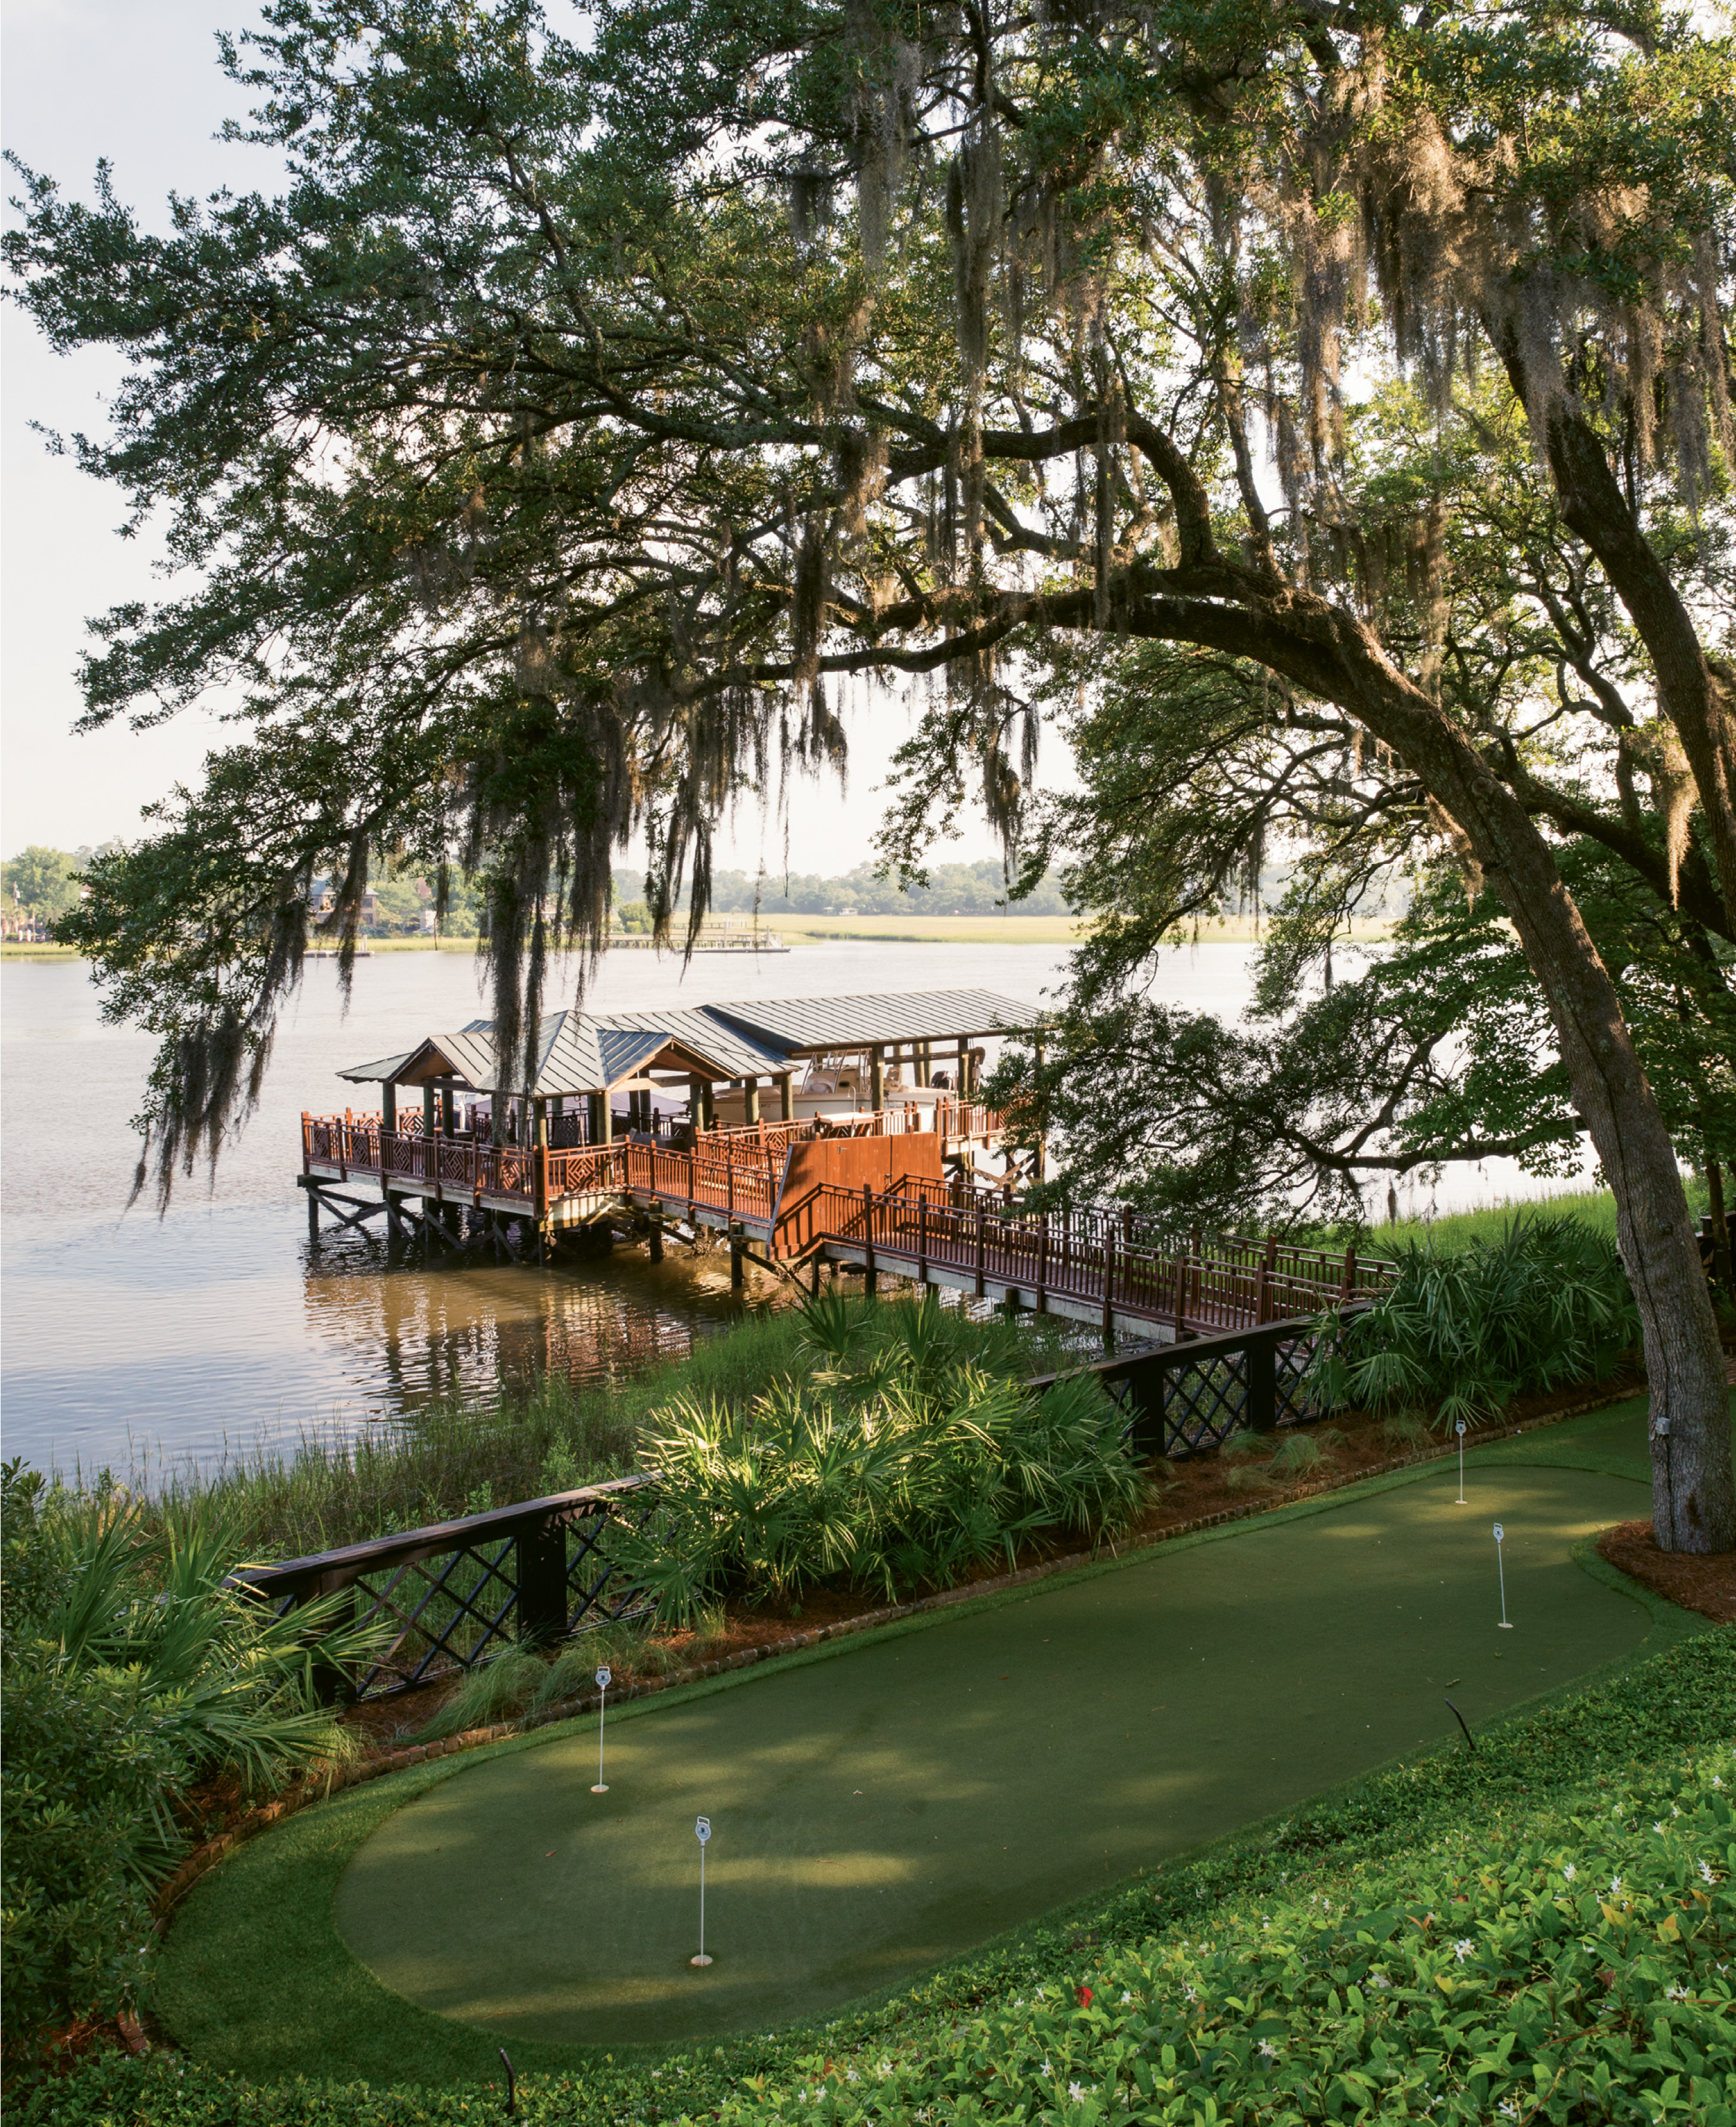 Ground Strokes: Wertimer's landscaping cascades down to the putting green and dock with a boathouse.